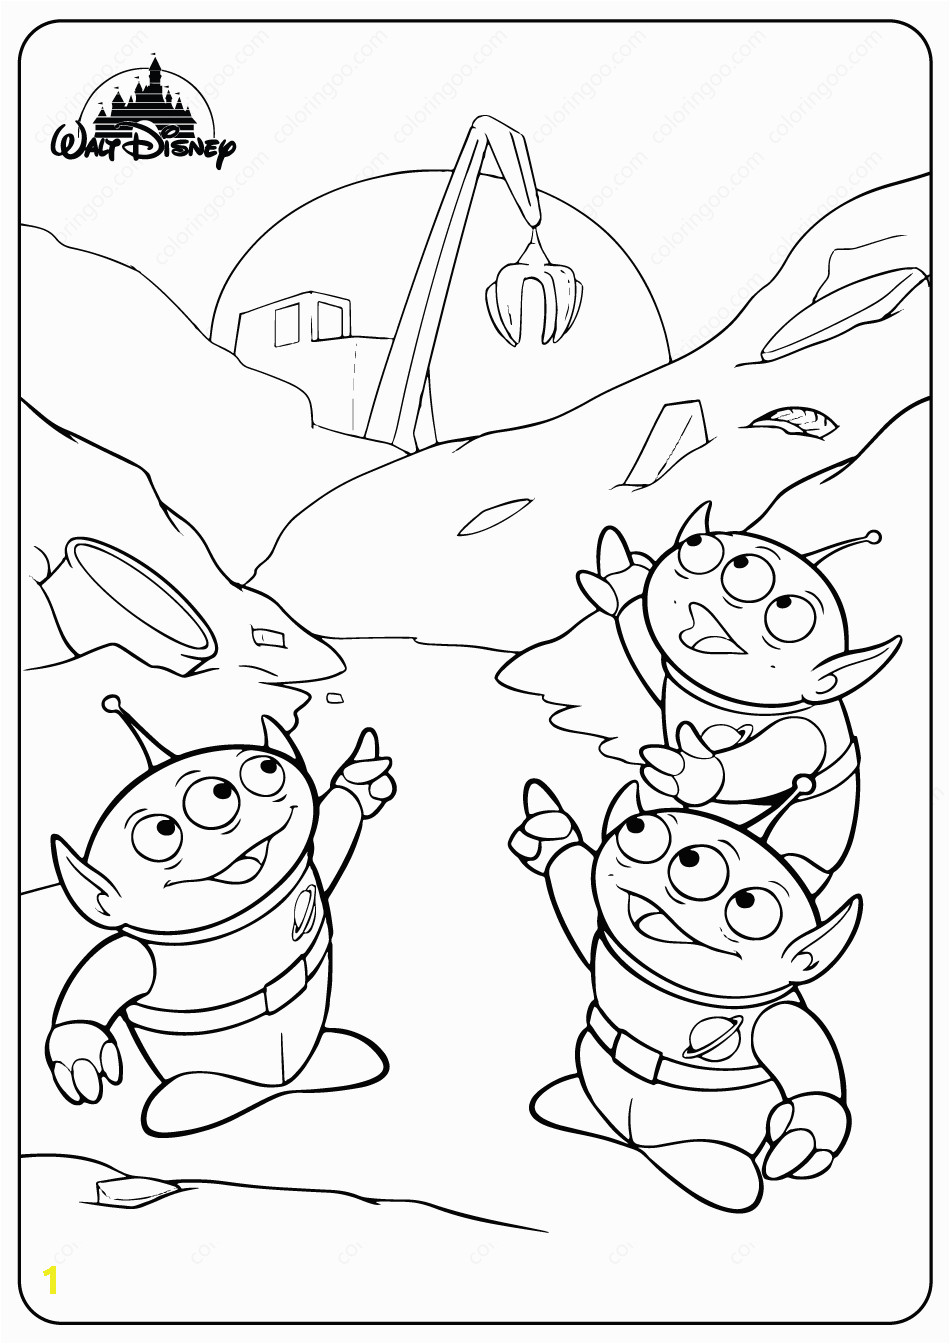 disney toy story aliens pdf coloring pages